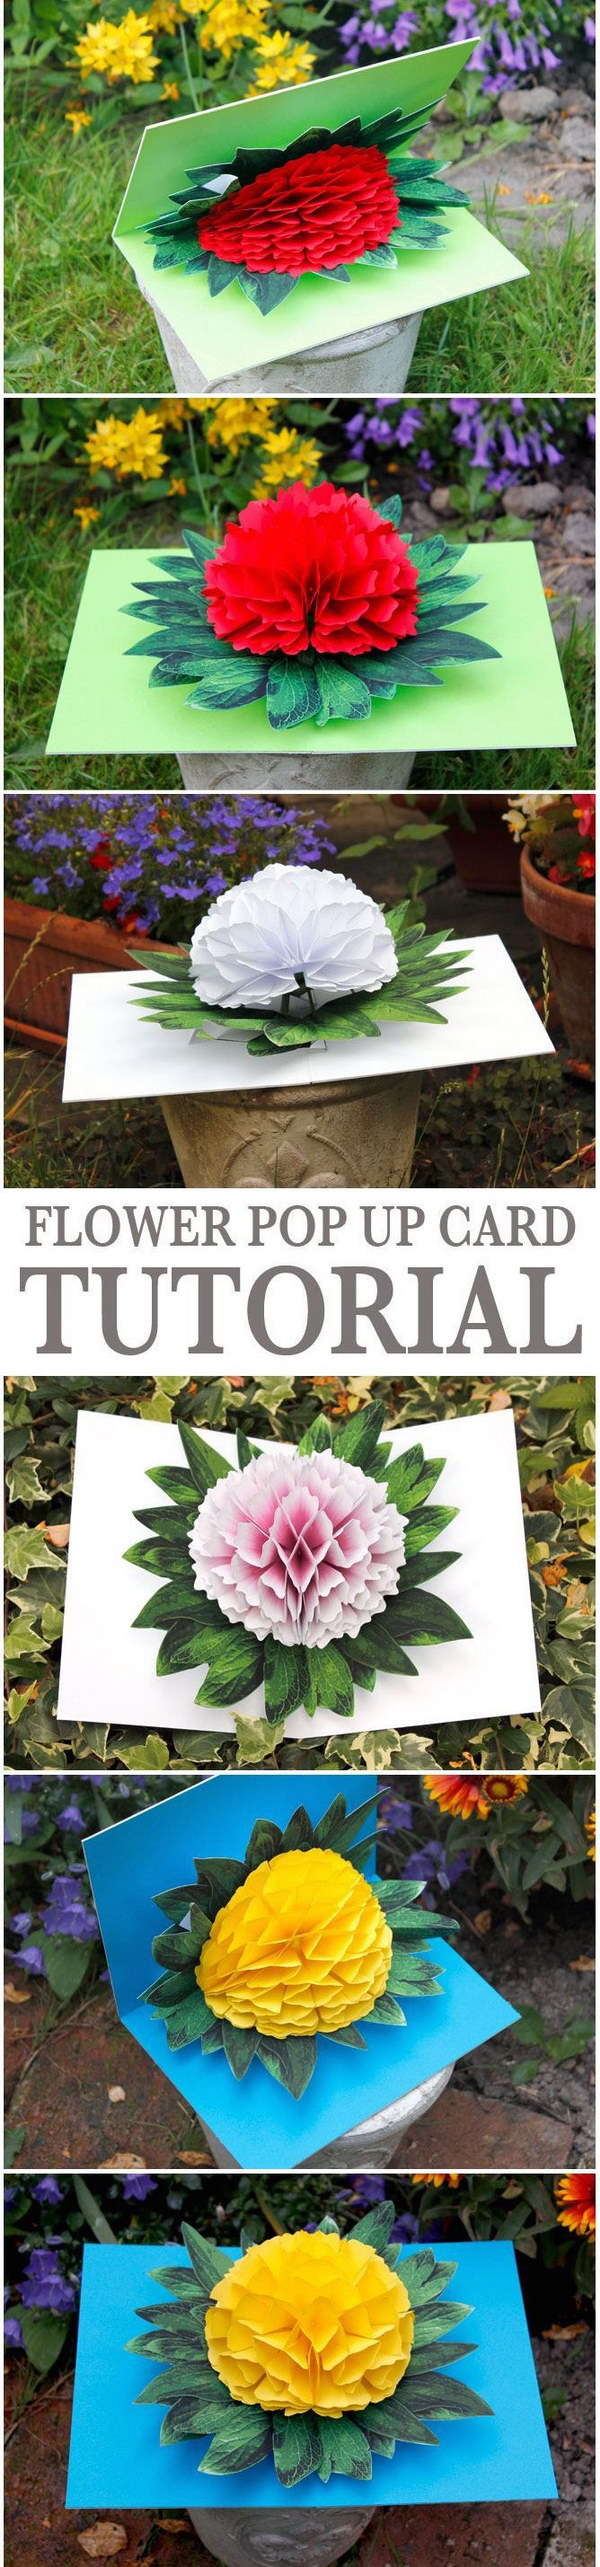 Flower Pop up Card.